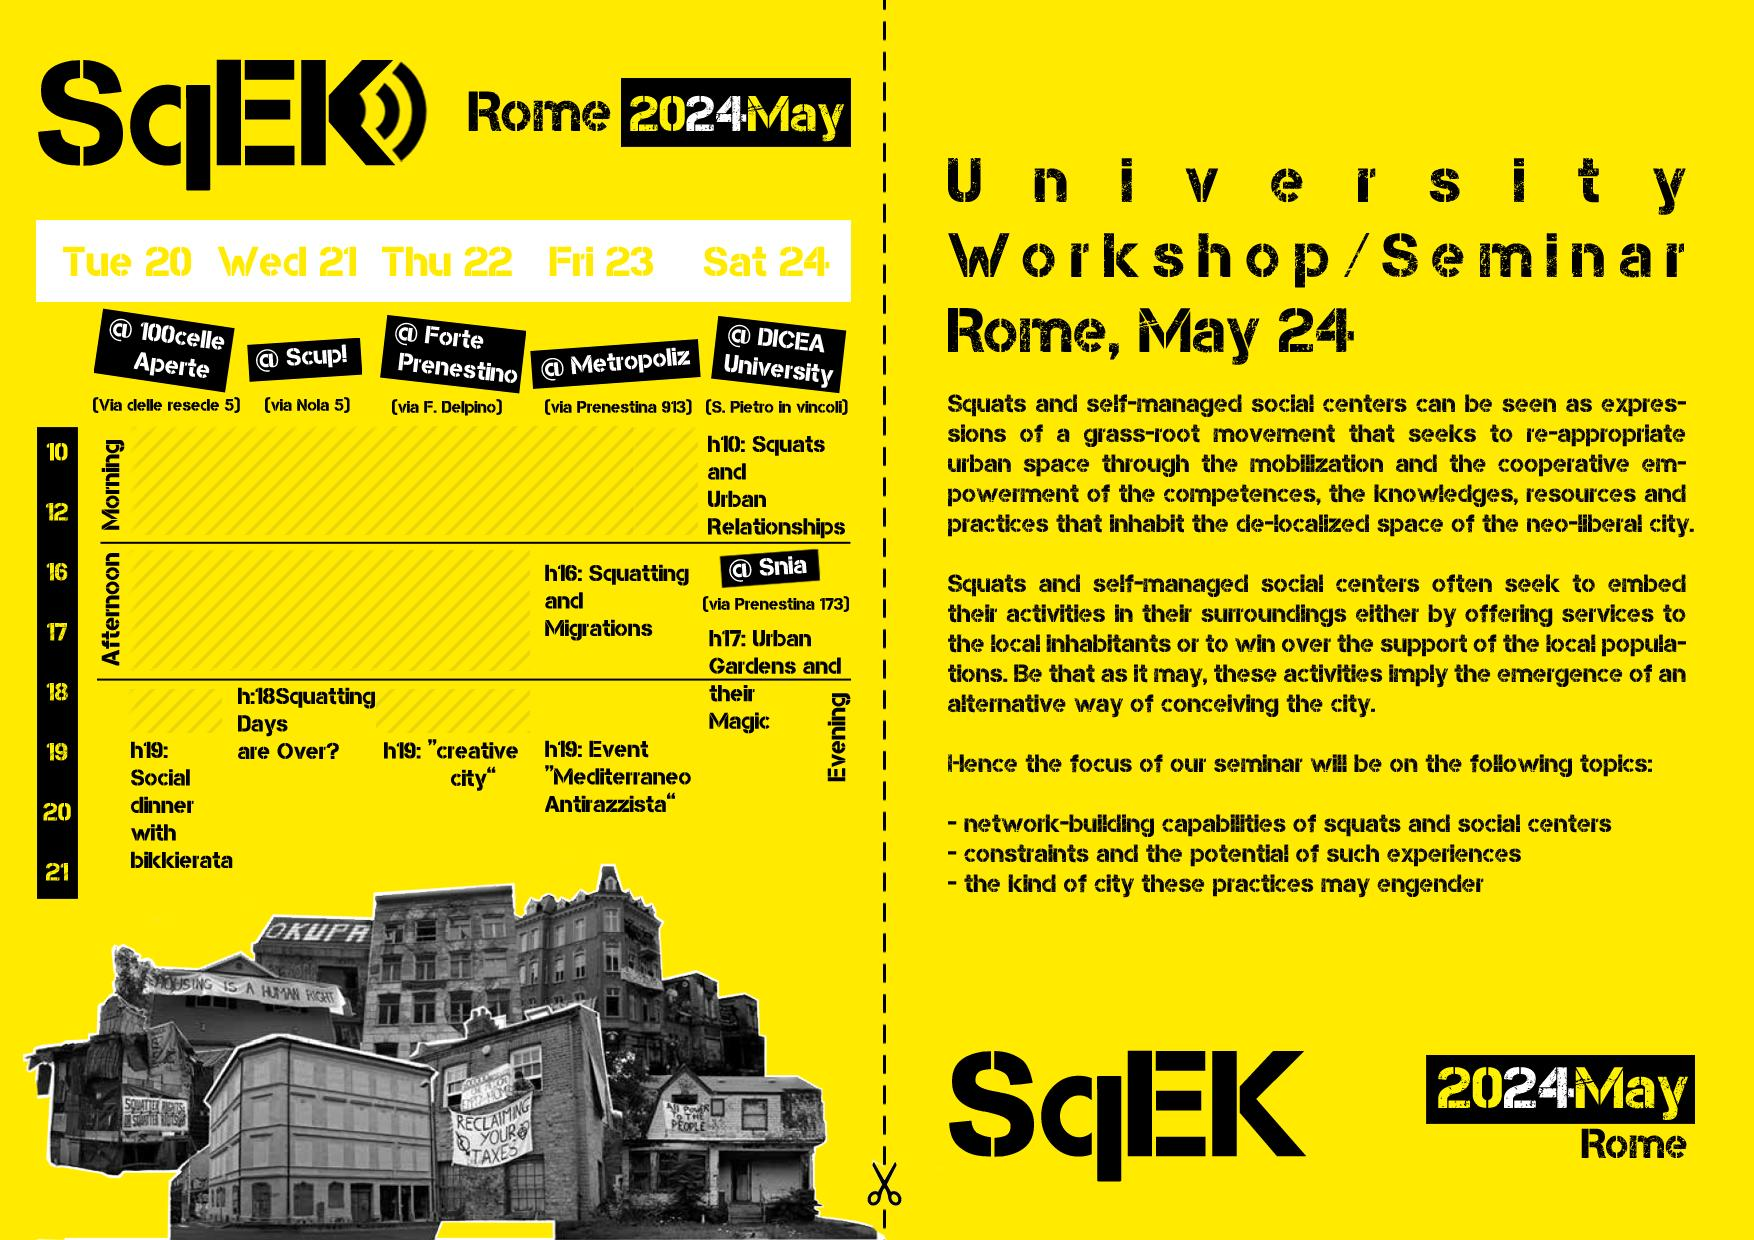 Flyer SqEK in Rome // 20-25 May, 2014